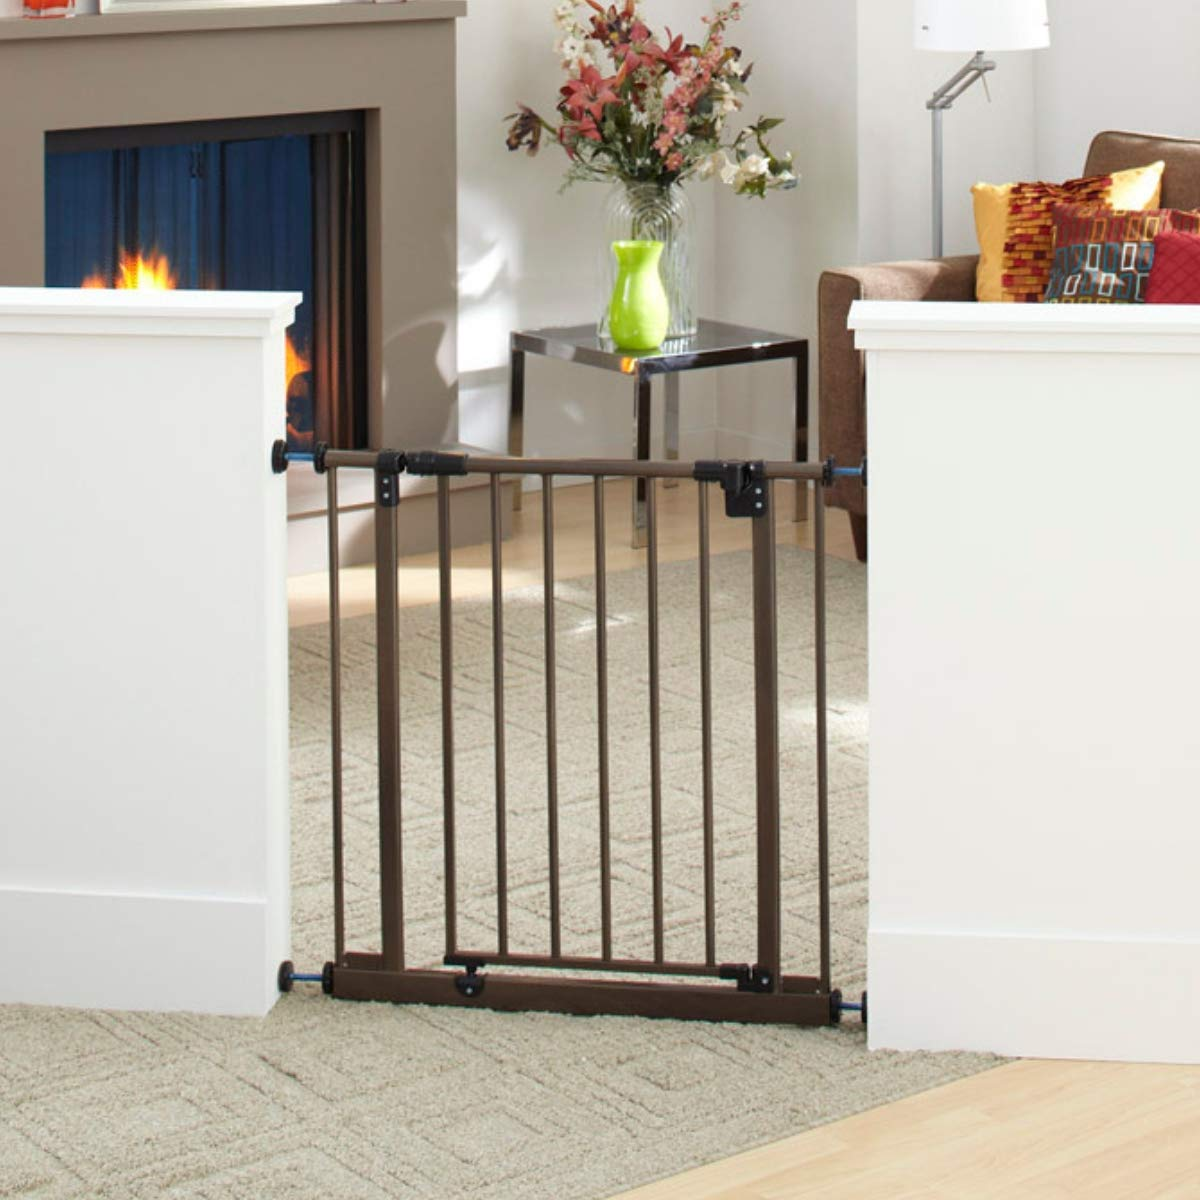 Easy Close Gate, White, Fits Spaces between 28 to 38.5 Wide and 29high North States Industries 4910S